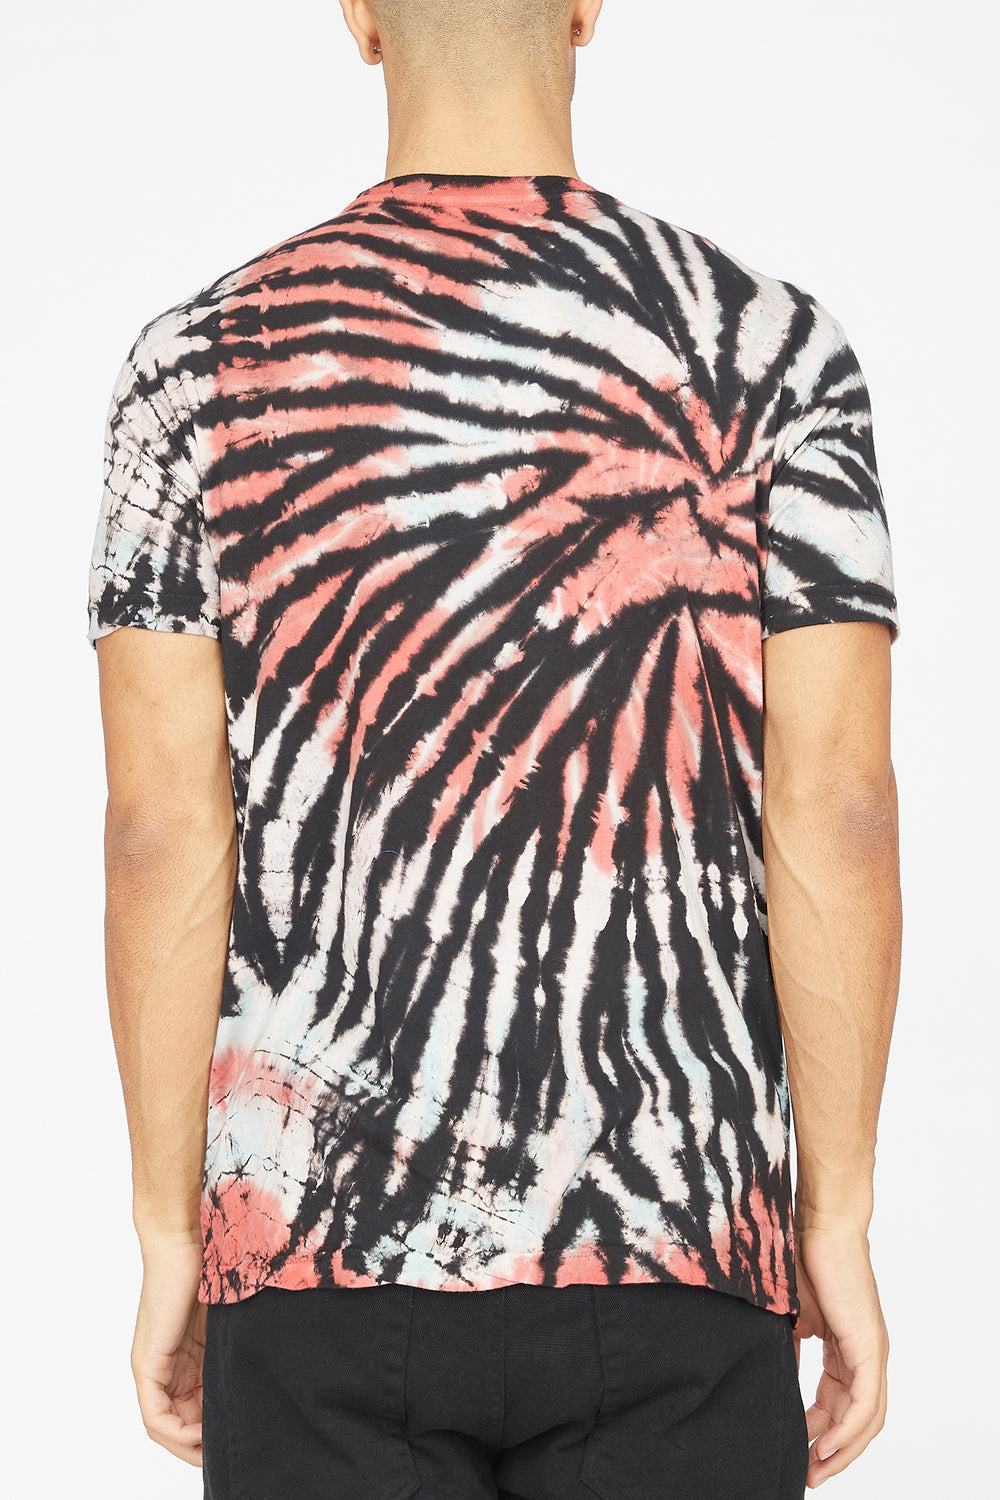 Grizzly Incite Tie-Dye T-Shirt Multi